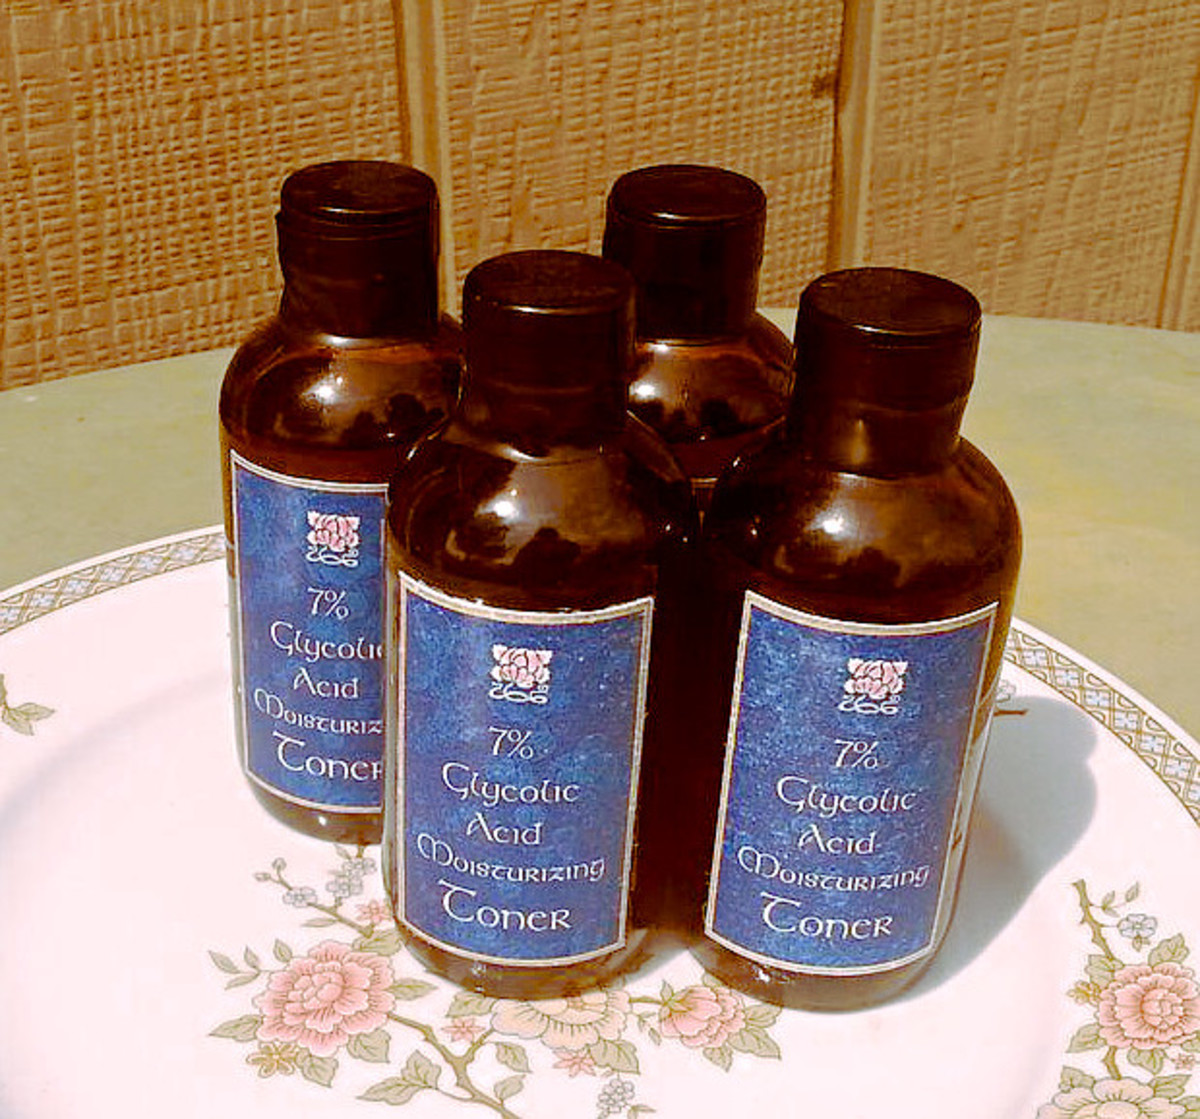 Bottled and labeled glycolic acid toner